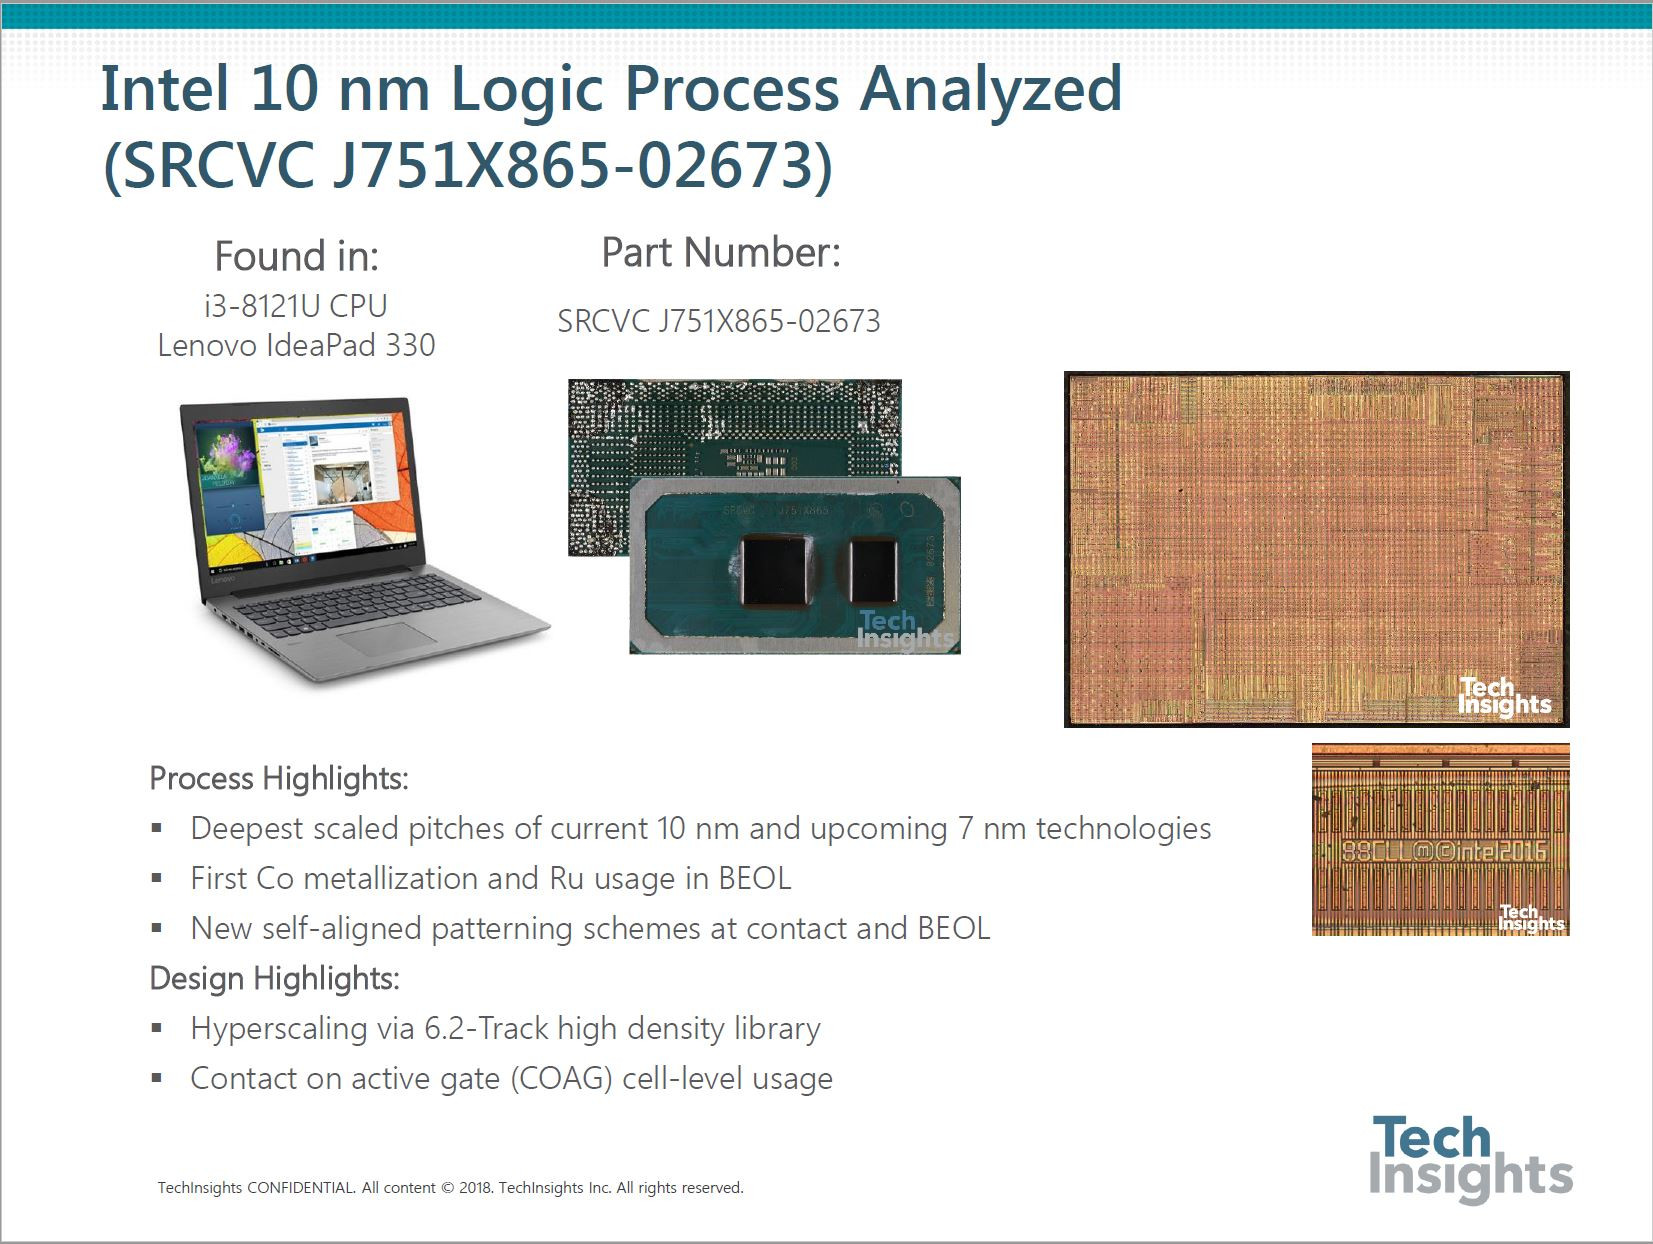 Intel 10 nm Process Increases Transistor Density by 2 7x Over 14 nm